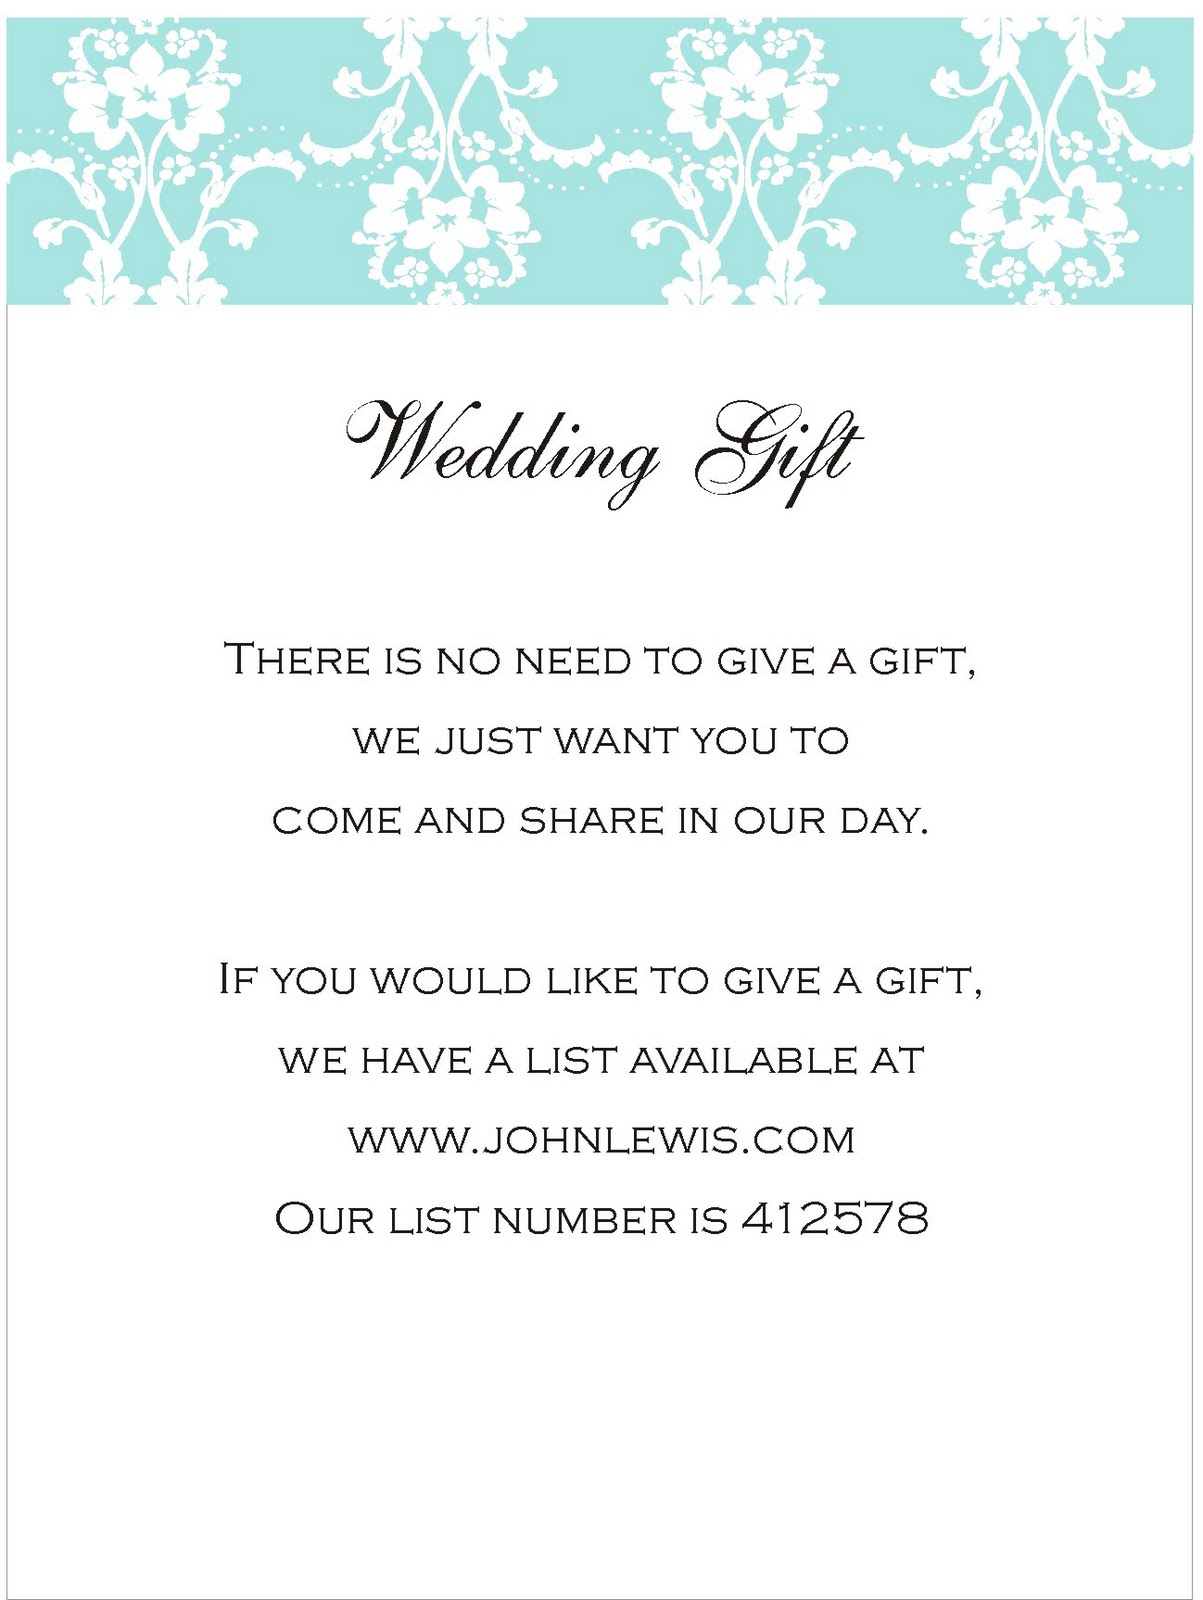 Wedding Gift Card Registry Wording : Inspiration for weddings, invitations and stationery: May 2010